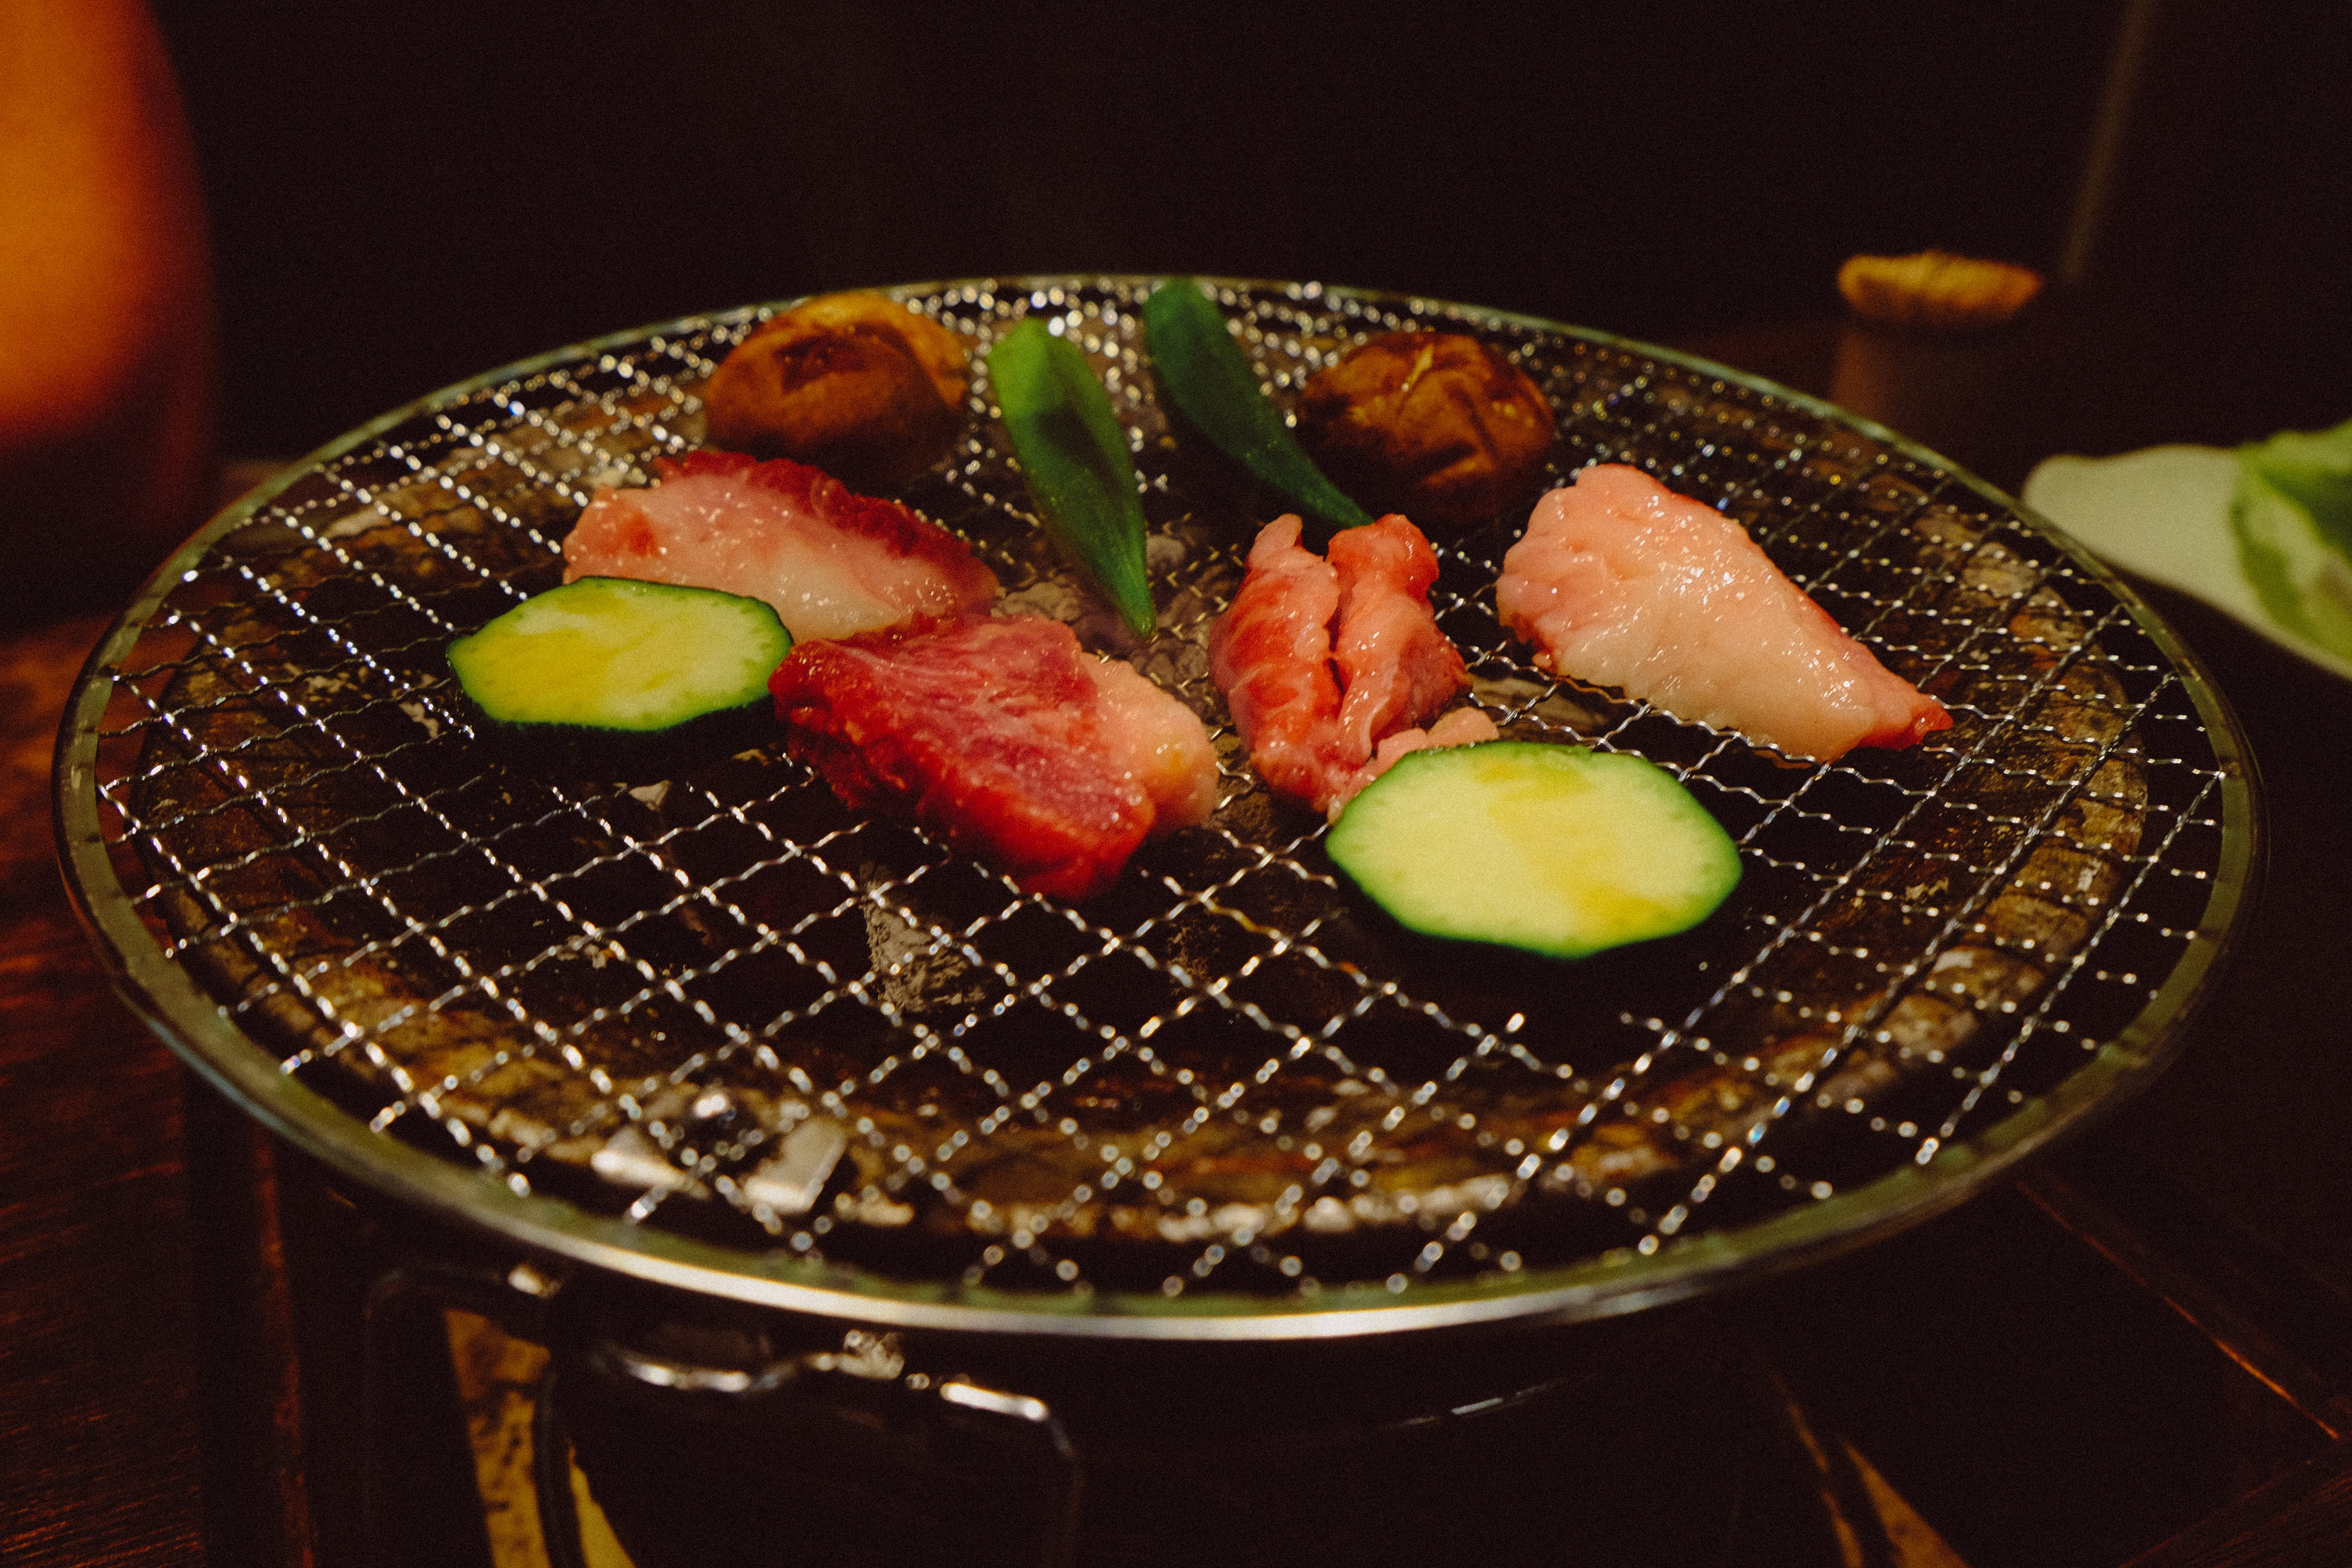 Raw Meat And Vegetable On Grill Pot